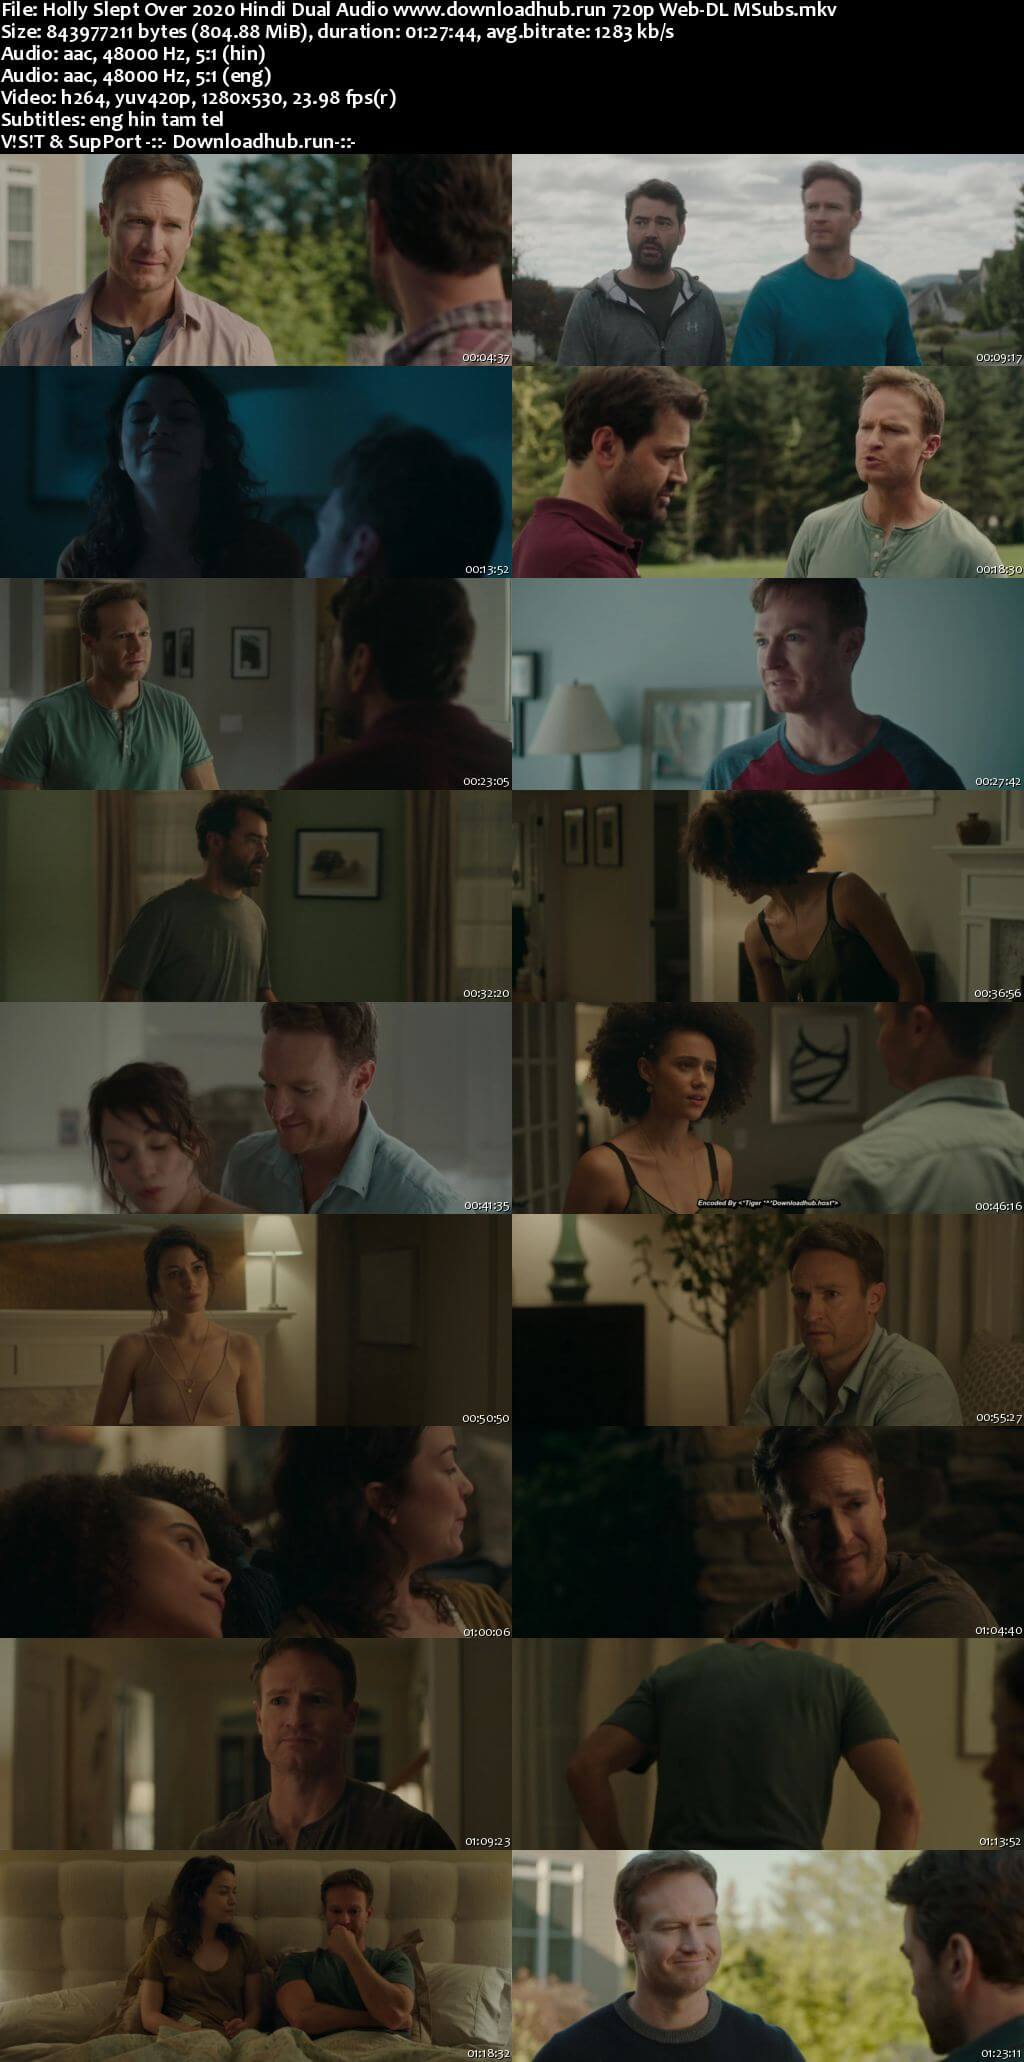 Holly Slept Over 2020 Hindi Dual Audio 720p Web-DL MSubs